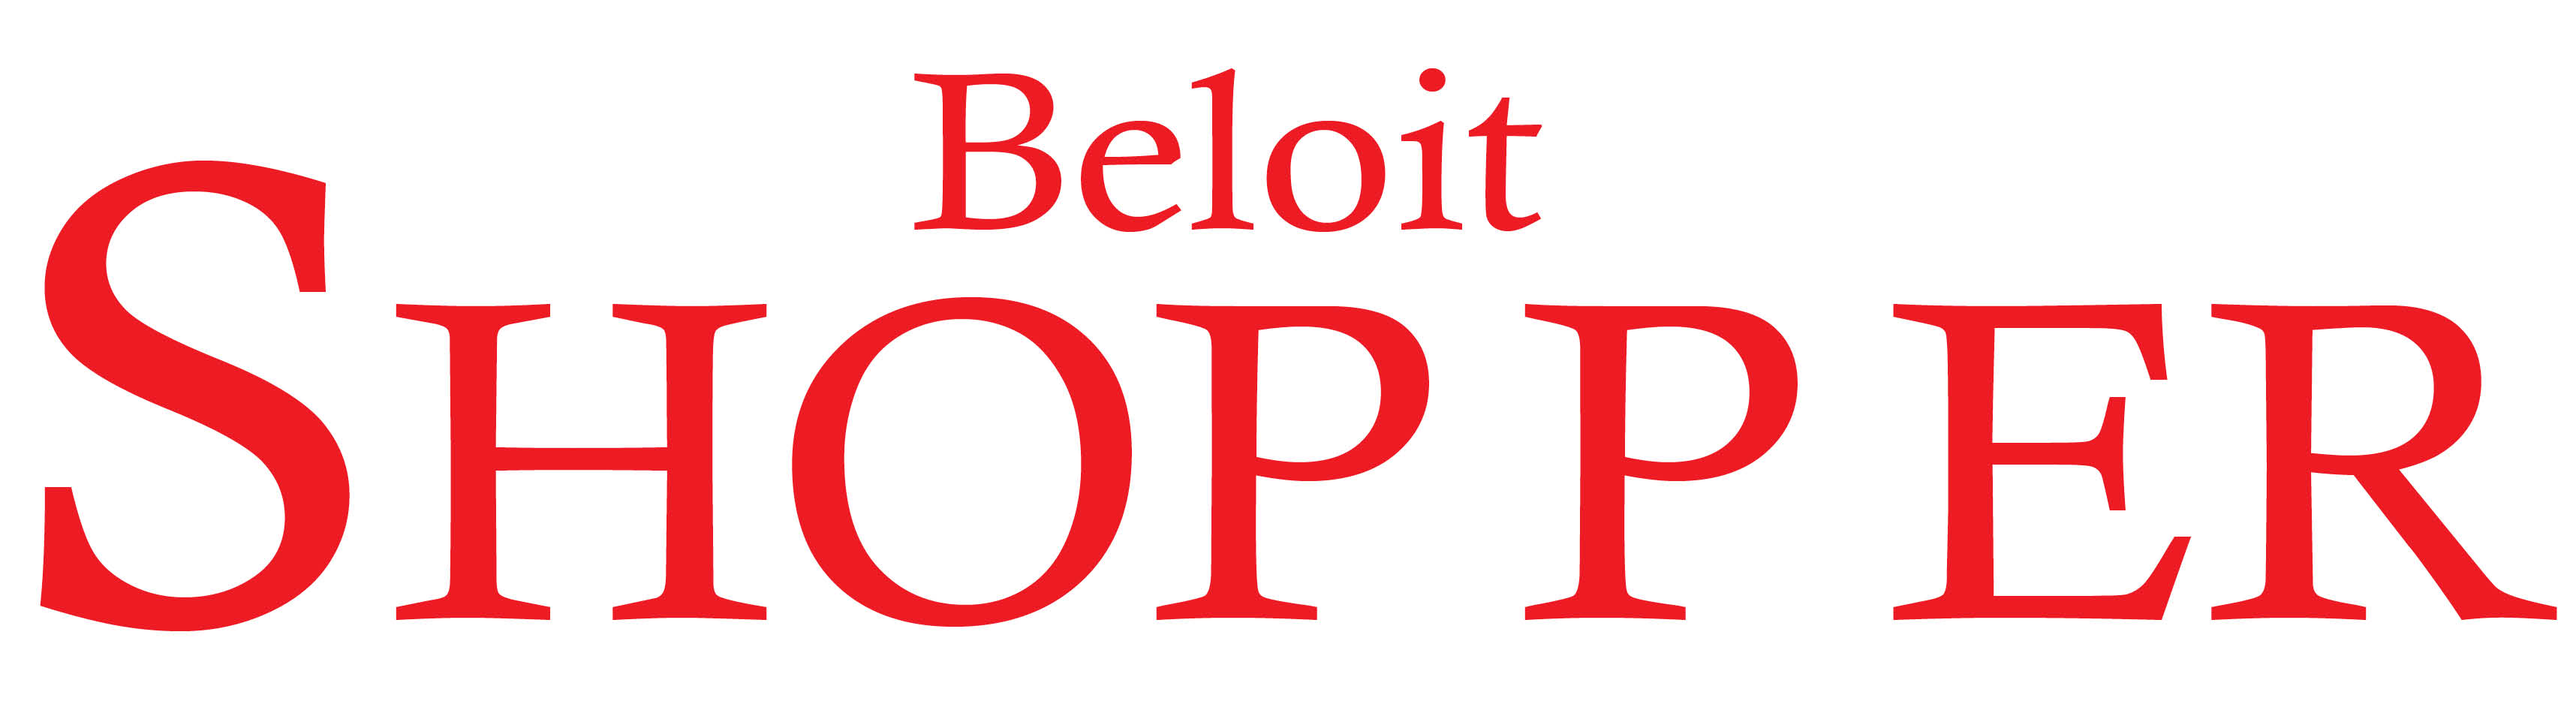 6/29/17 Beloit Shopper